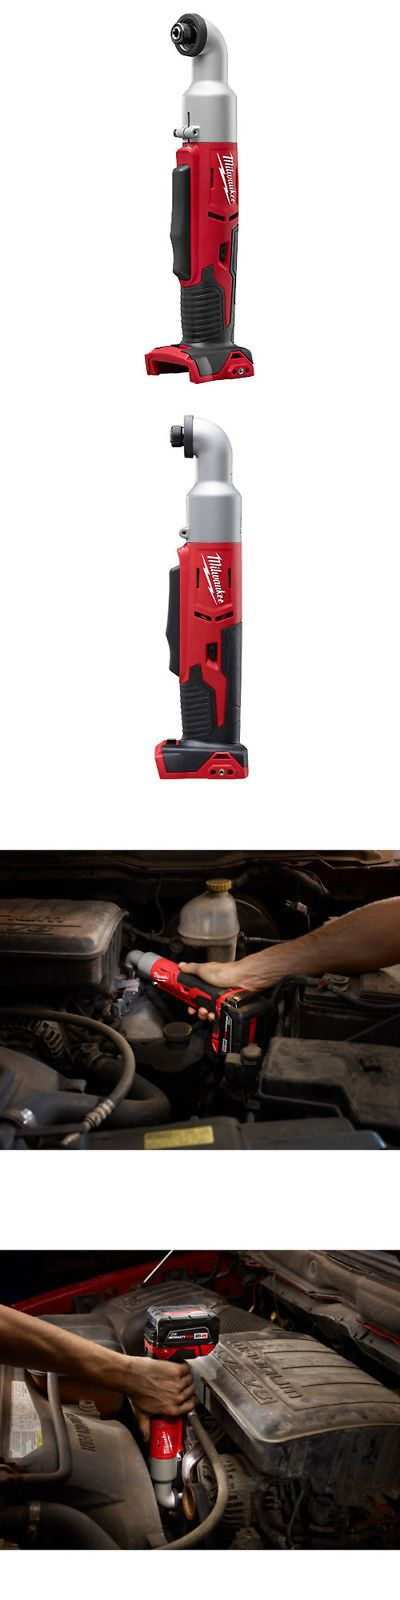 tools: Milwaukee M18 Li-Ion 1 4 2-Speed Right Angle Impact Driver 2667-20 (Bare) New -> BUY IT NOW ONLY: $99.99 on eBay!